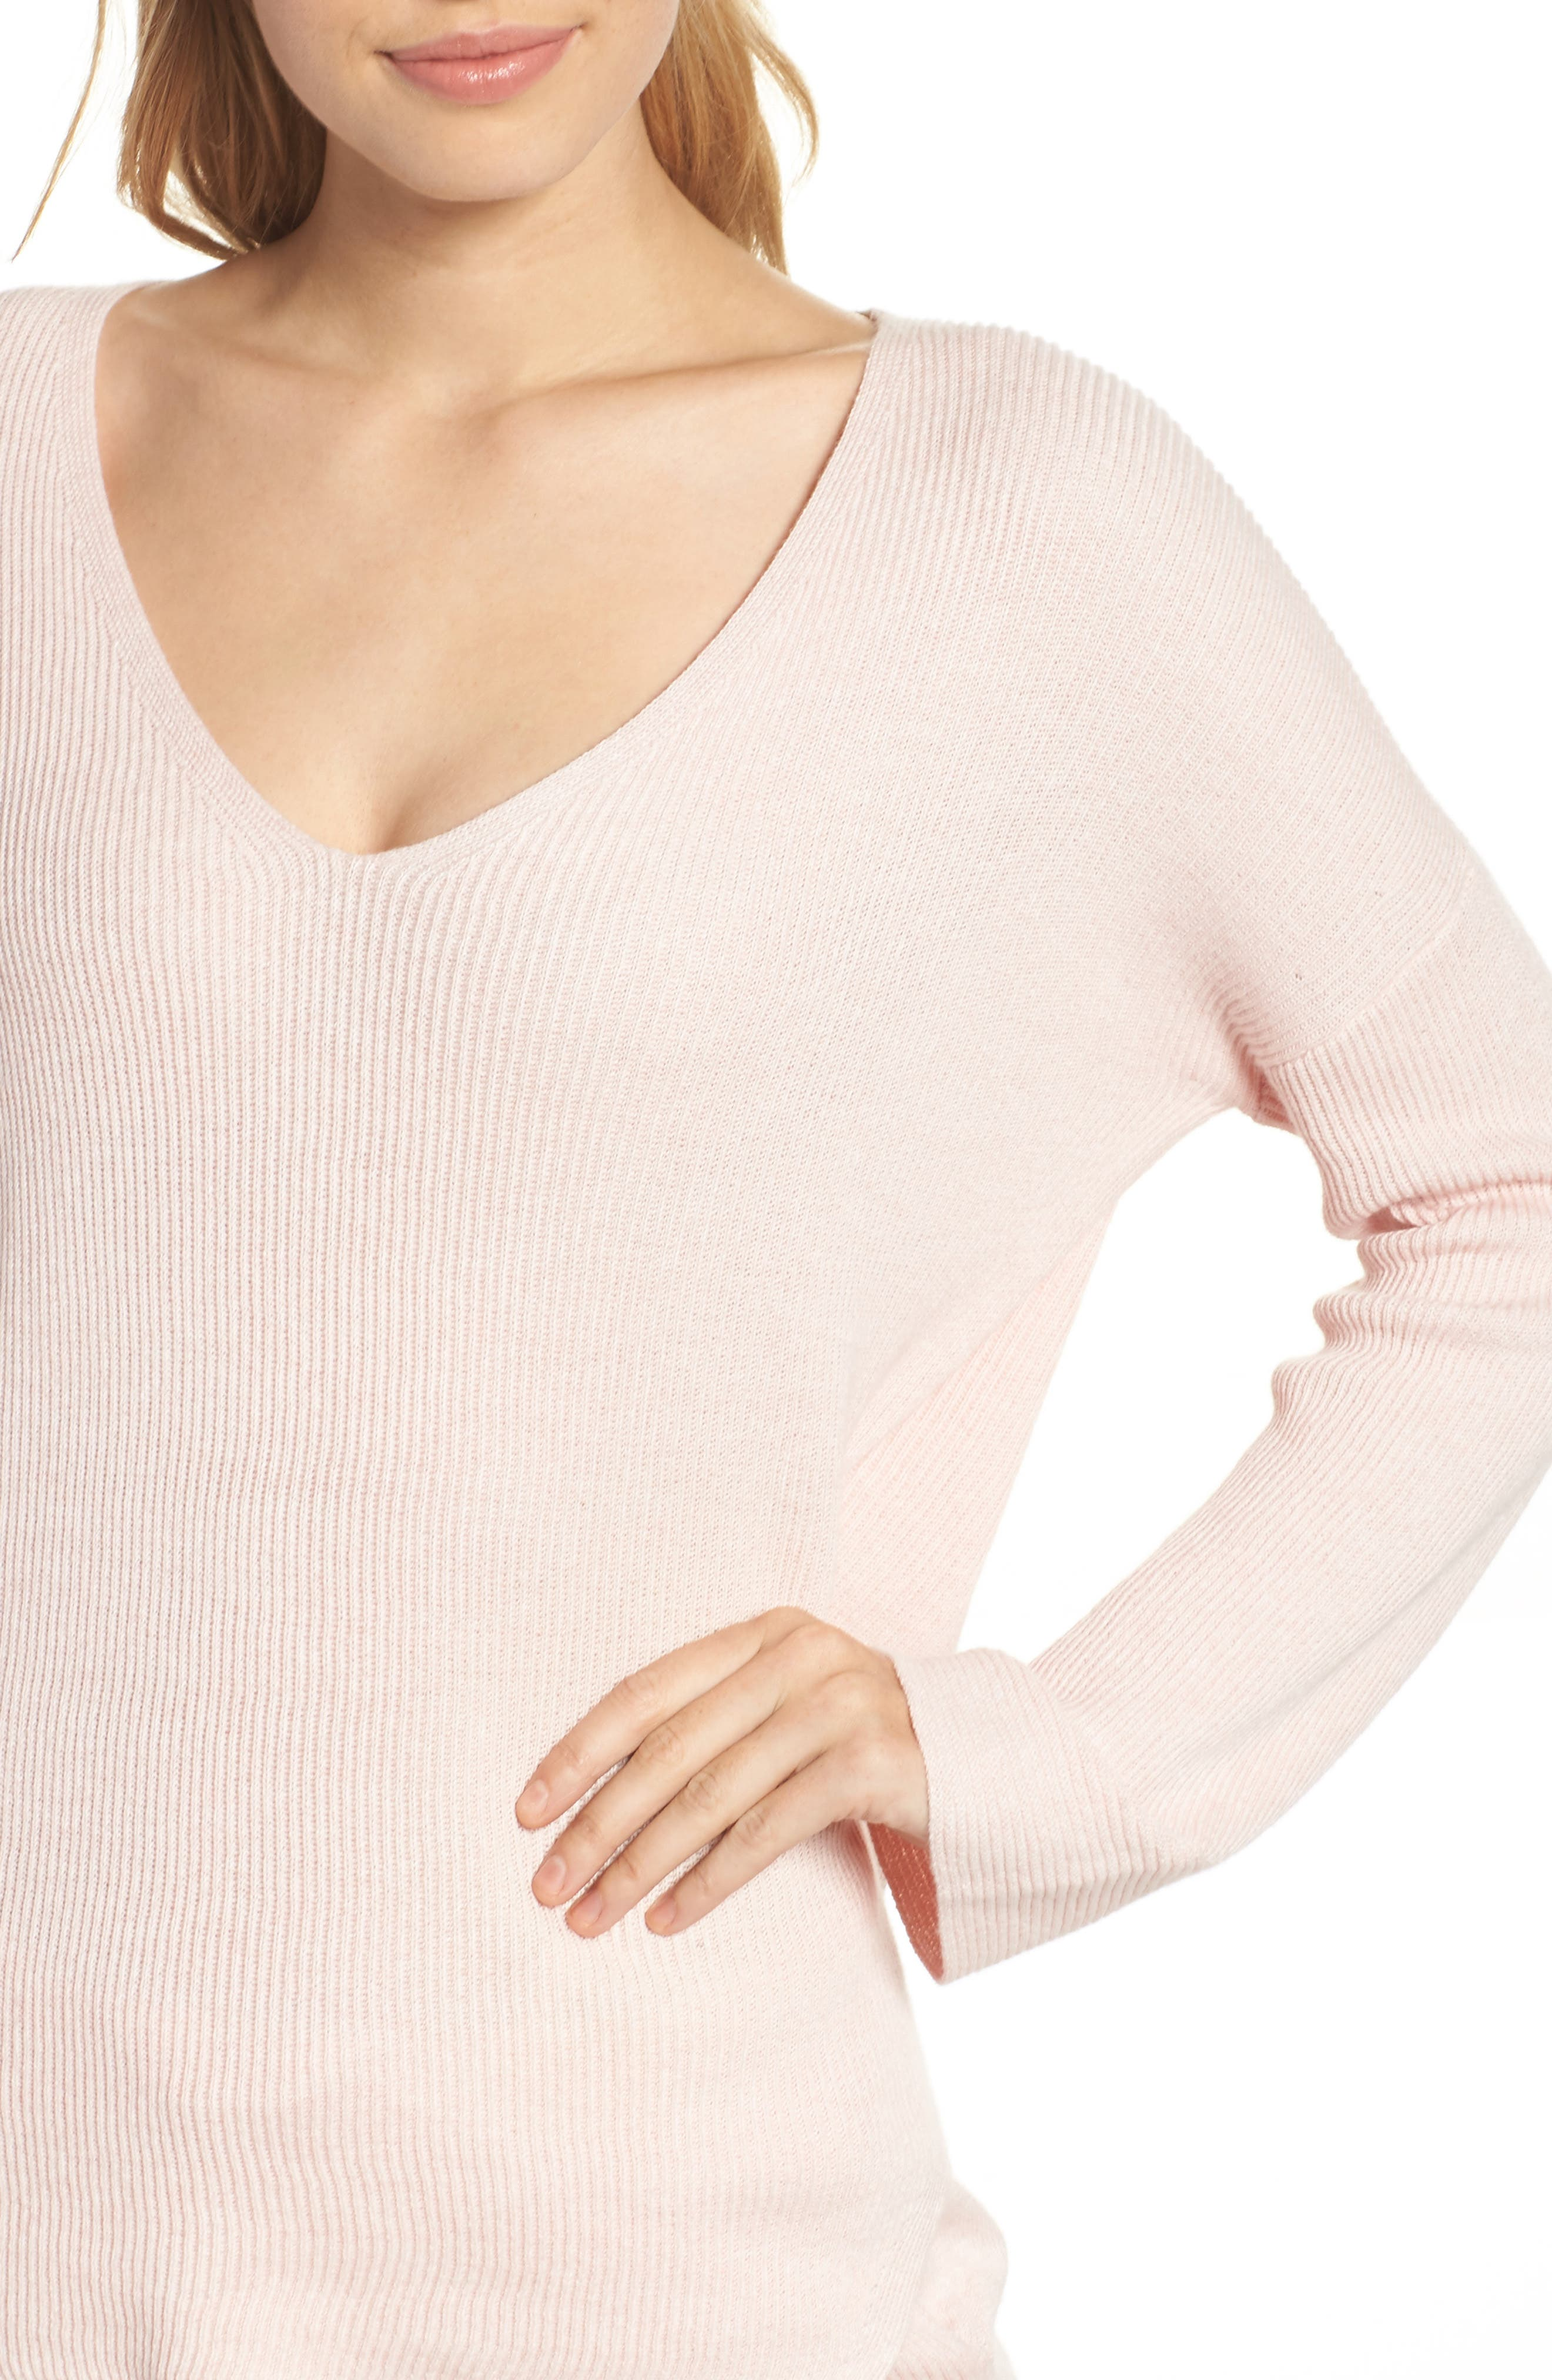 Veronica Lounge Pullover,                             Alternate thumbnail 6, color,                             Soft Pink